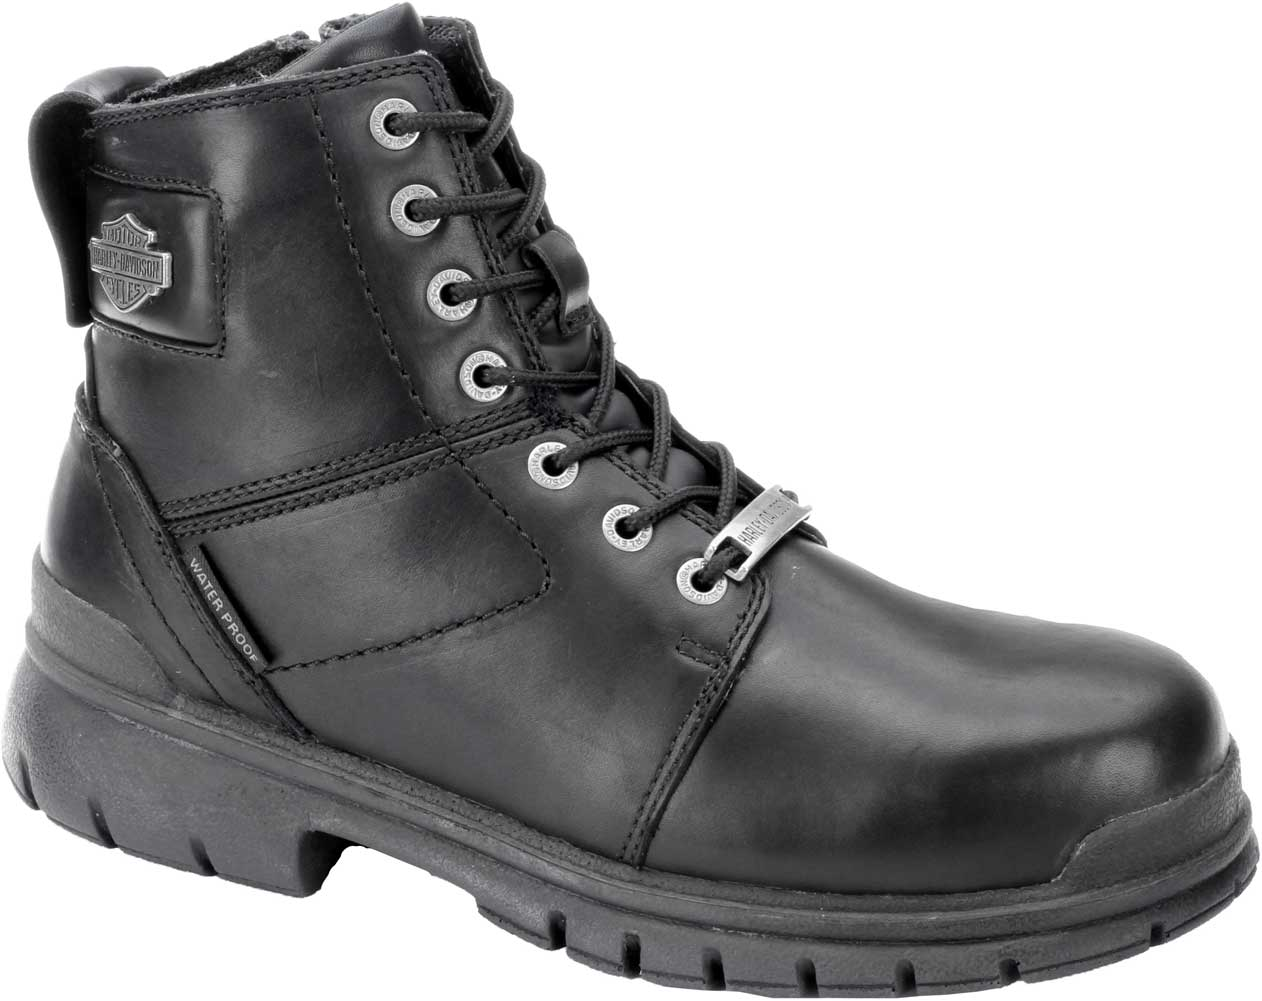 Harley-Davidson® D93198 Men/'s Gage Composite Toe Leather Motorcycle Boots